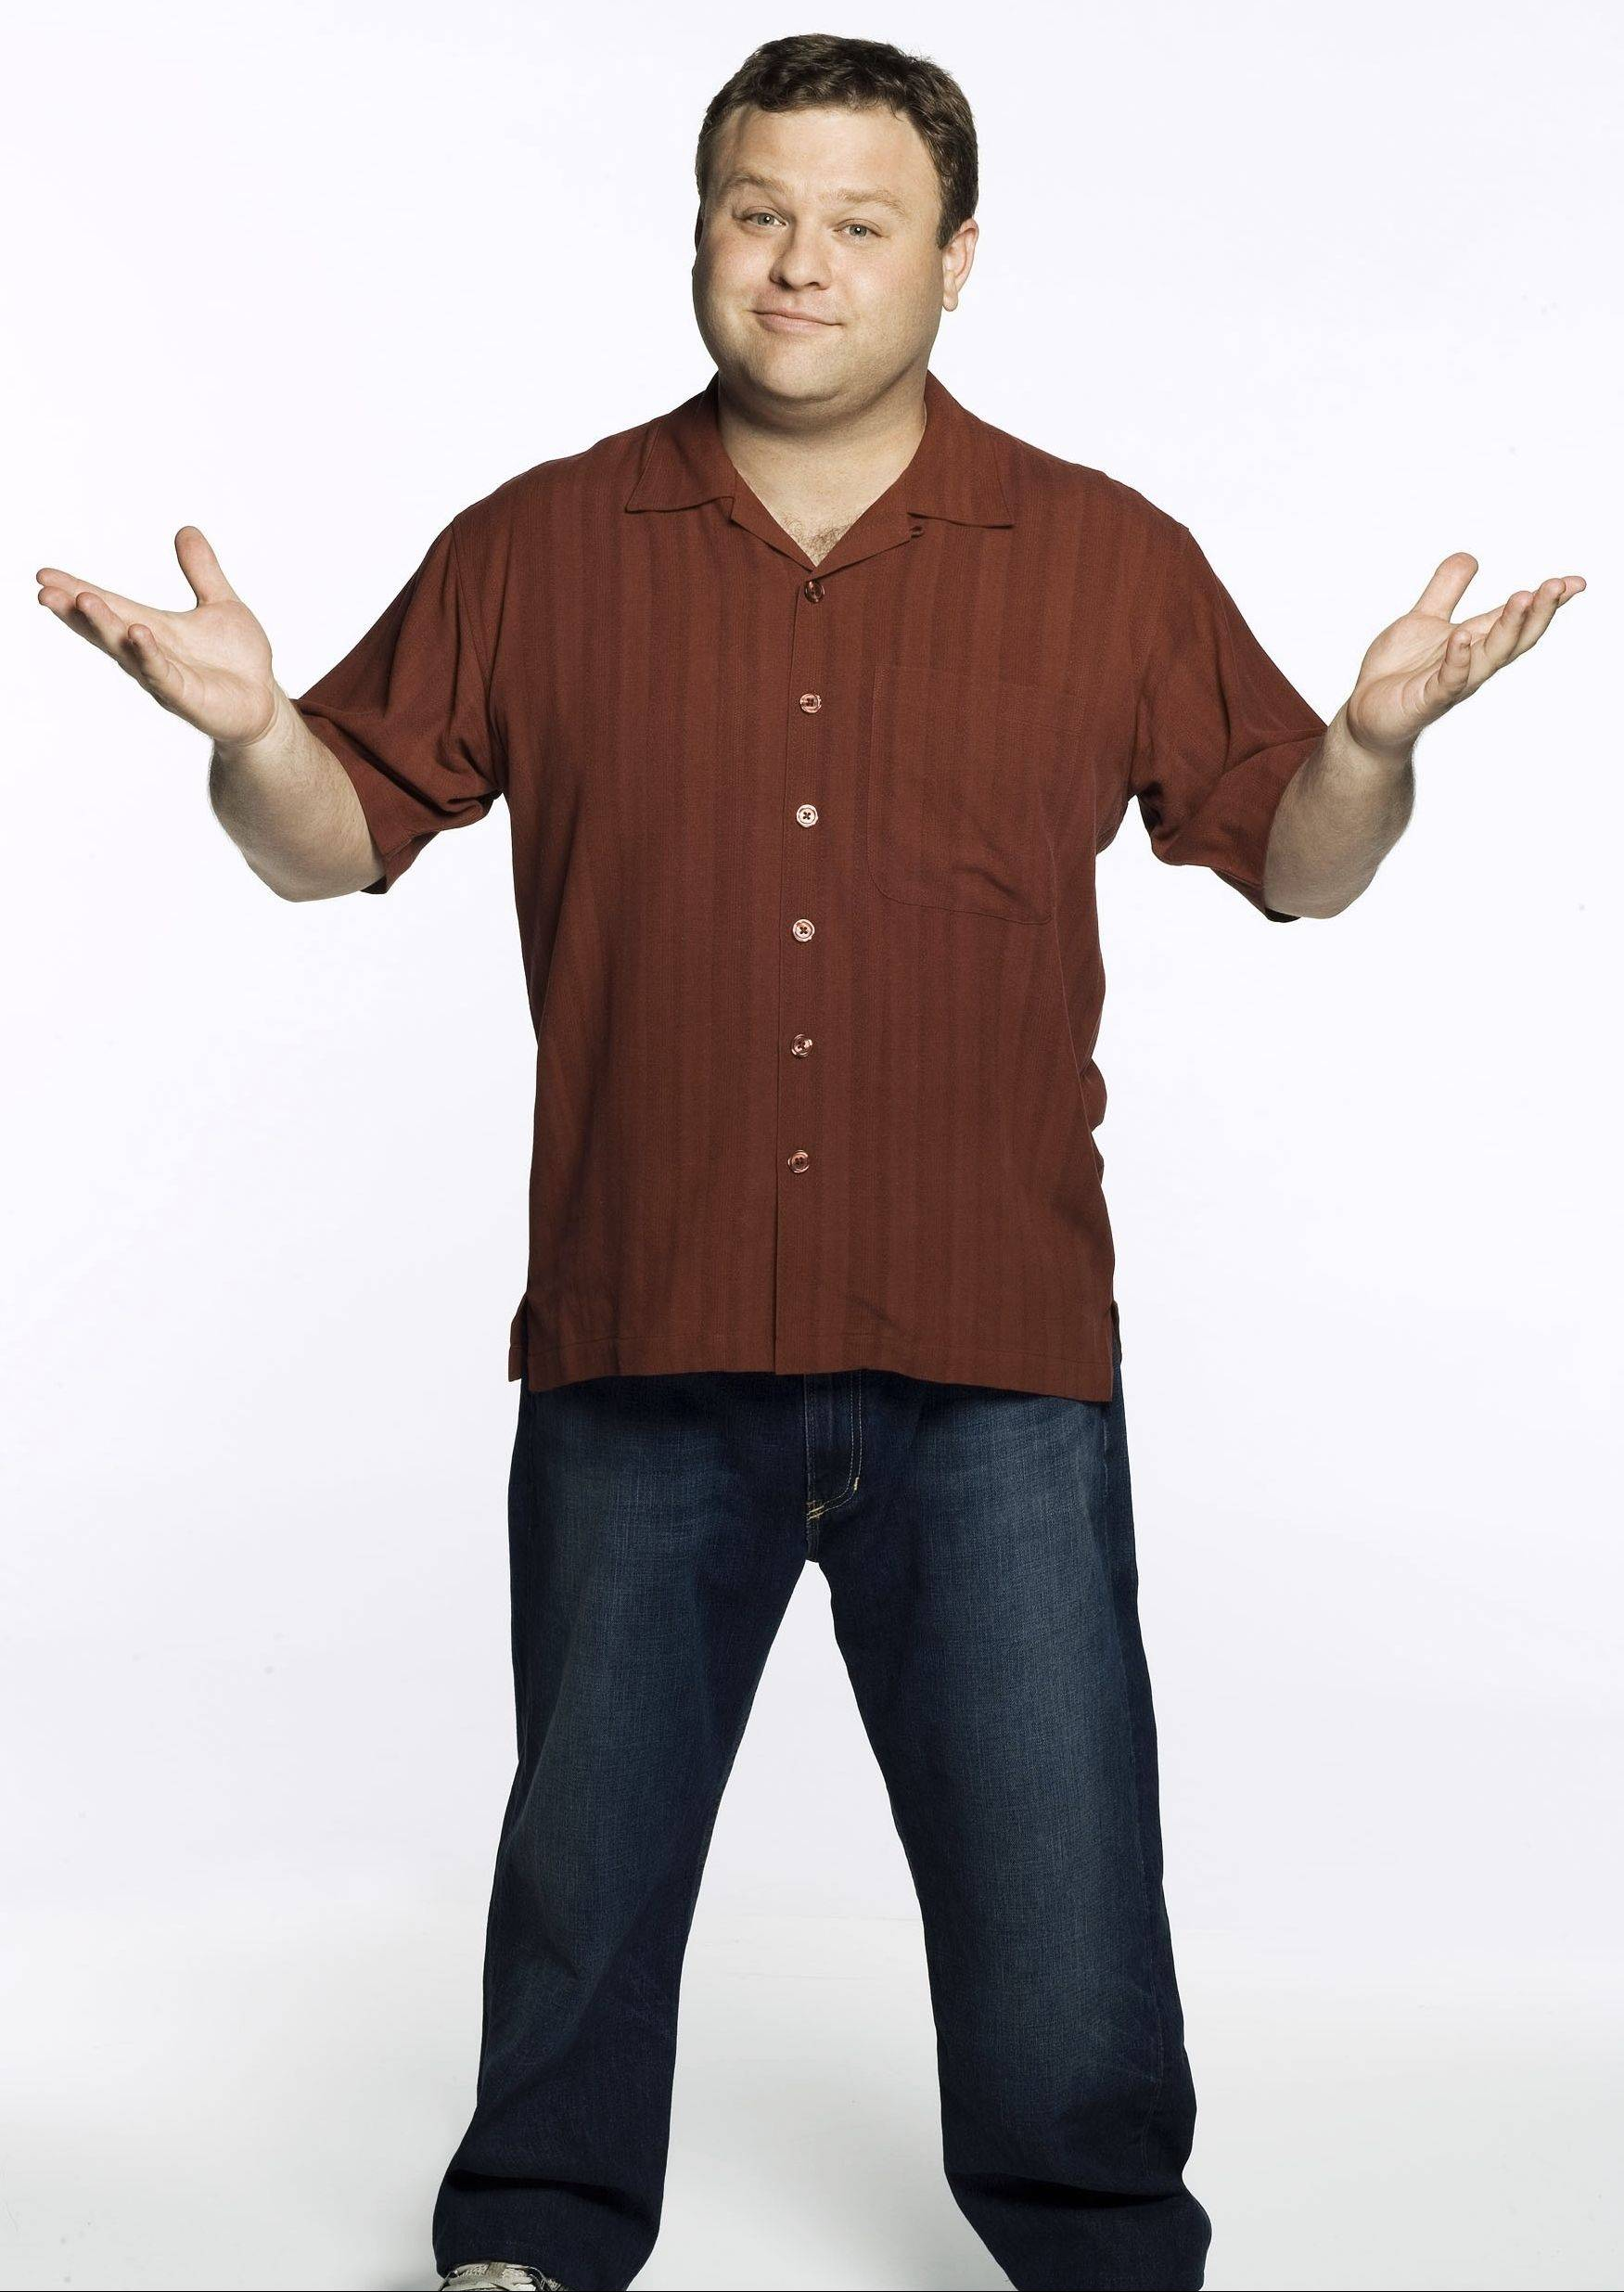 Comedian Frank Caliendo returns to the Paramount Theatre in Aurora on Friday, Oct. 7.